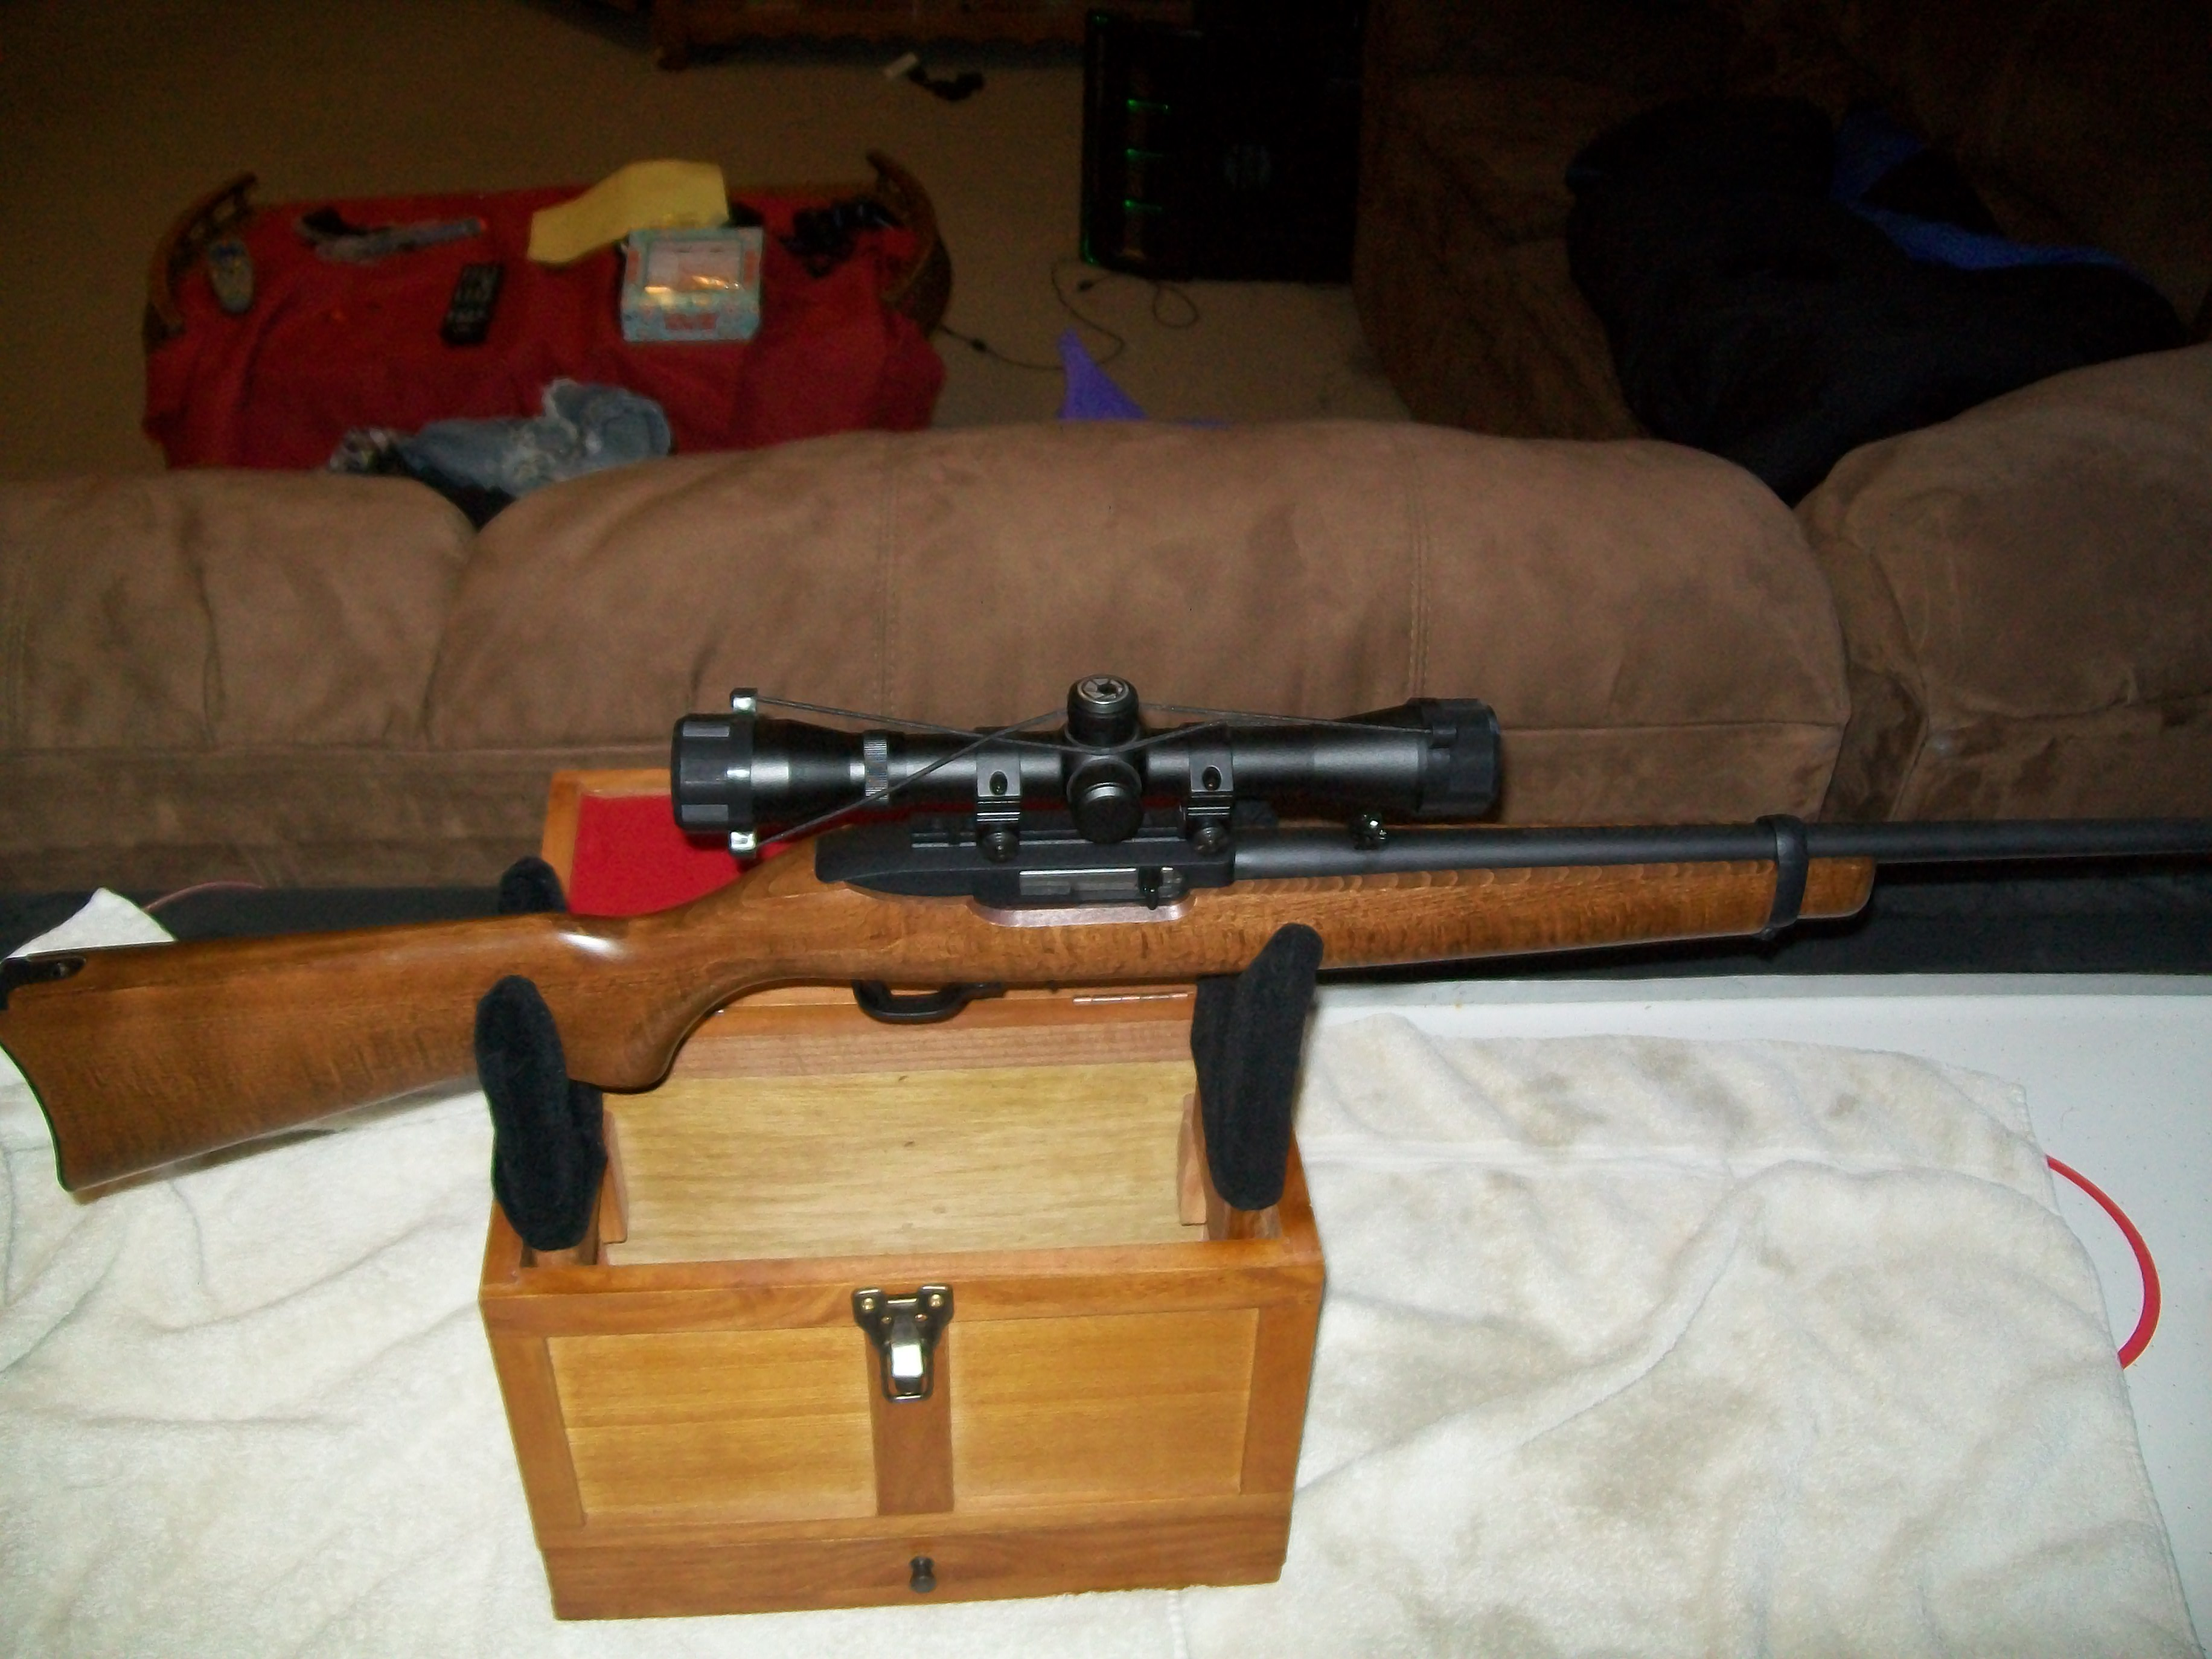 Picture of How to Field Strip a Ruger 10/22 Rifle for Cleaning